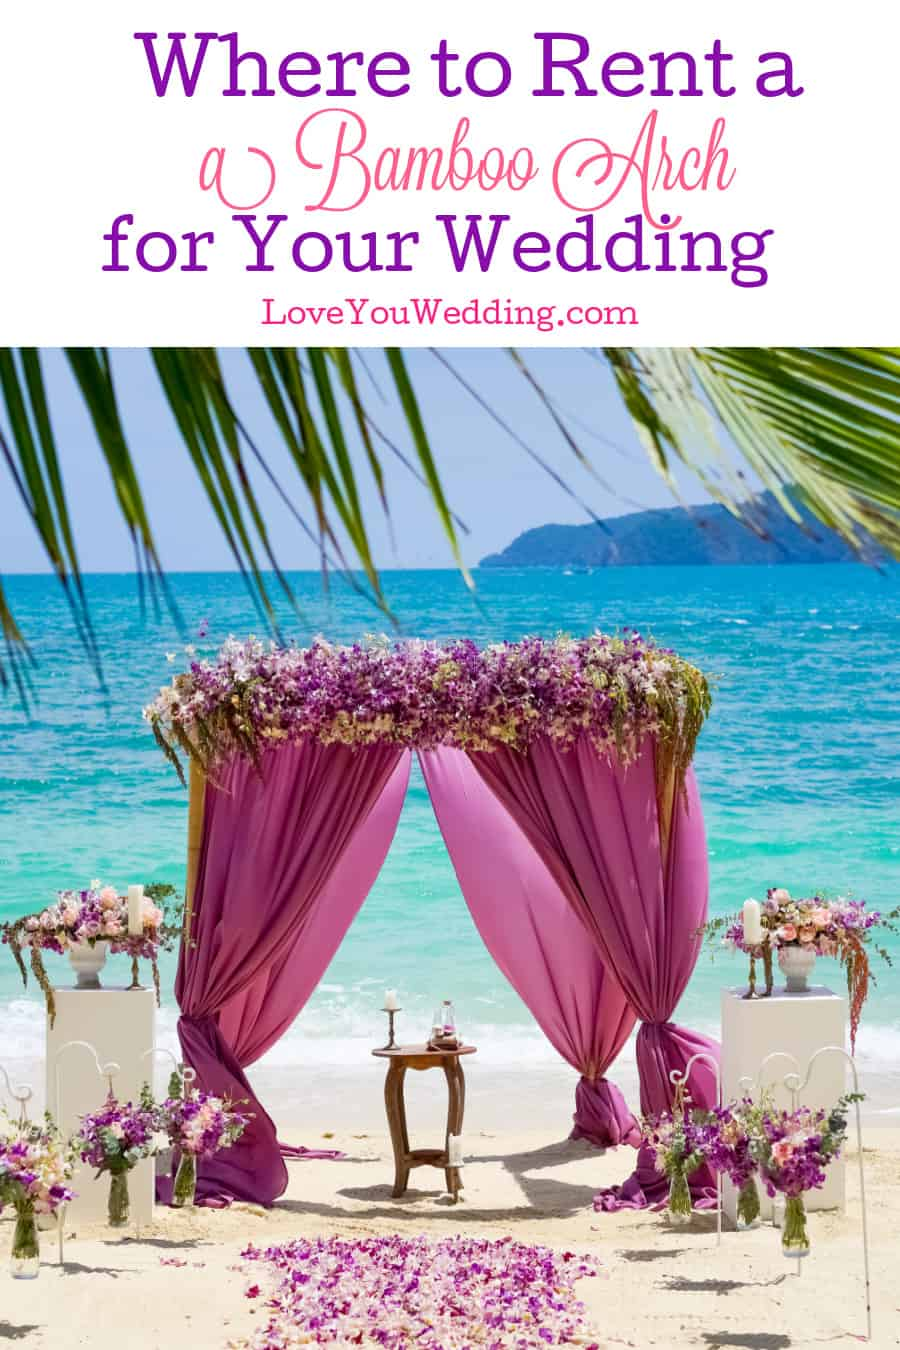 Check out tips on how to find a bamboo arch to rent for your wedding.